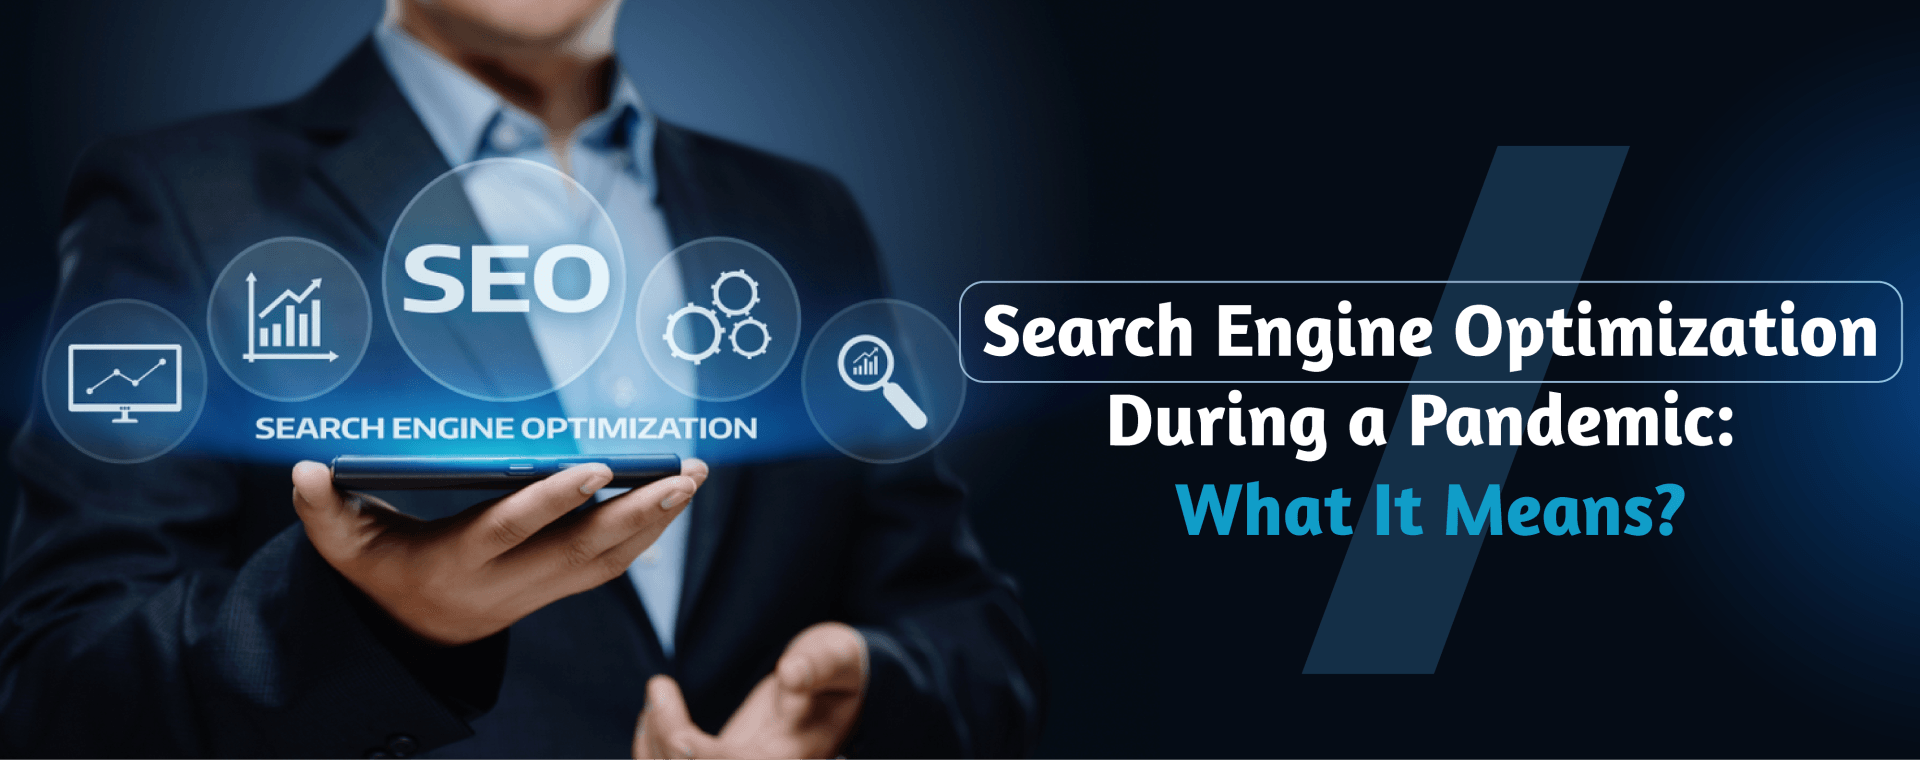 Search Engine Optimization During a Pandemic: What It Means?